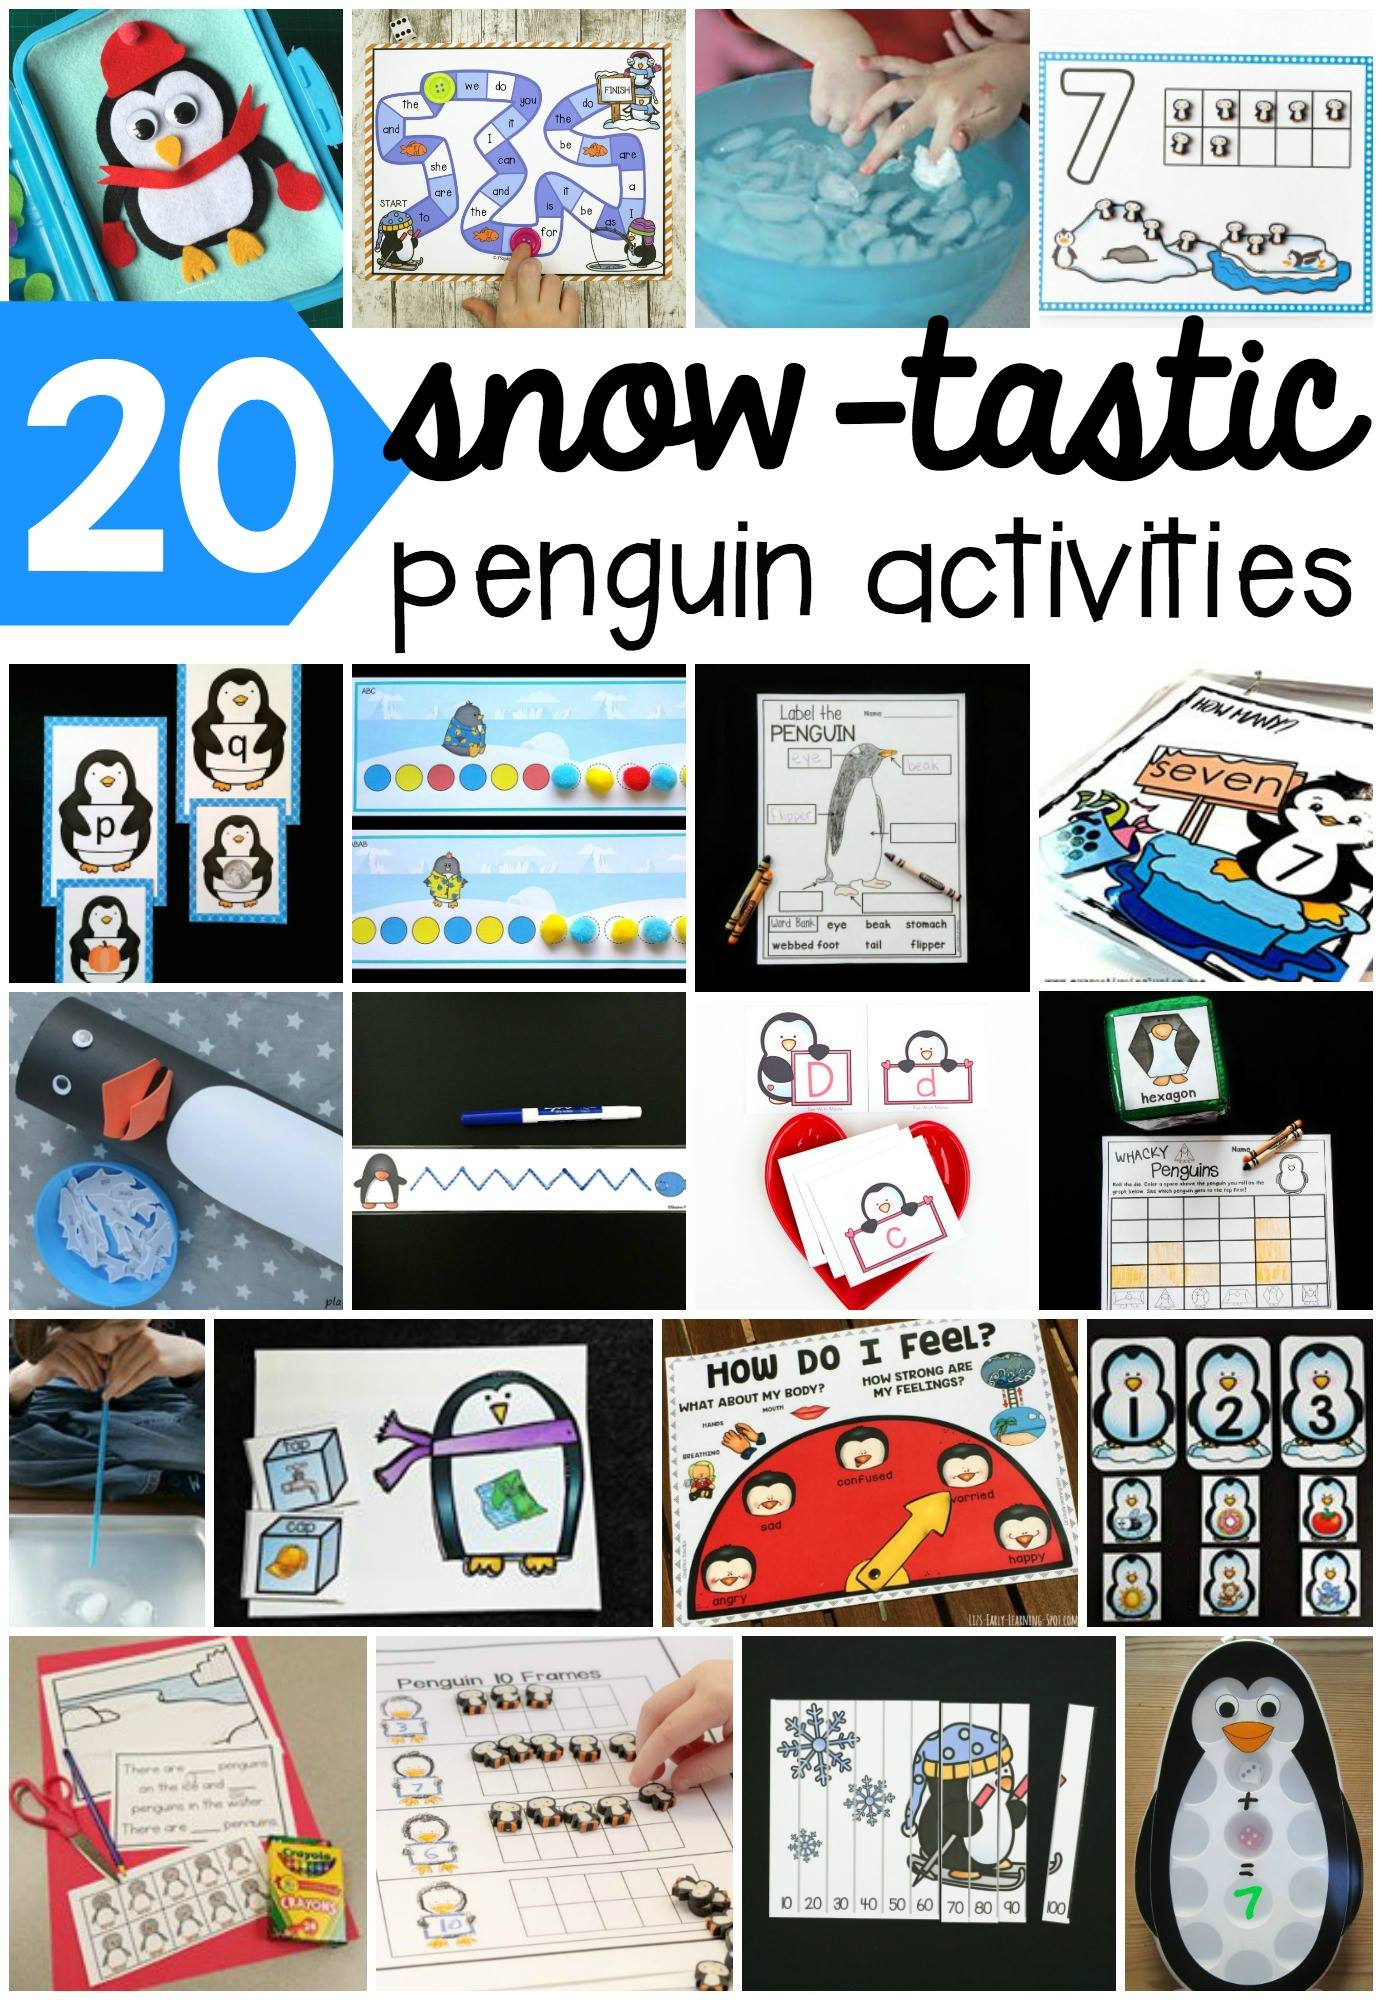 20 super fun penguin activities for kids!